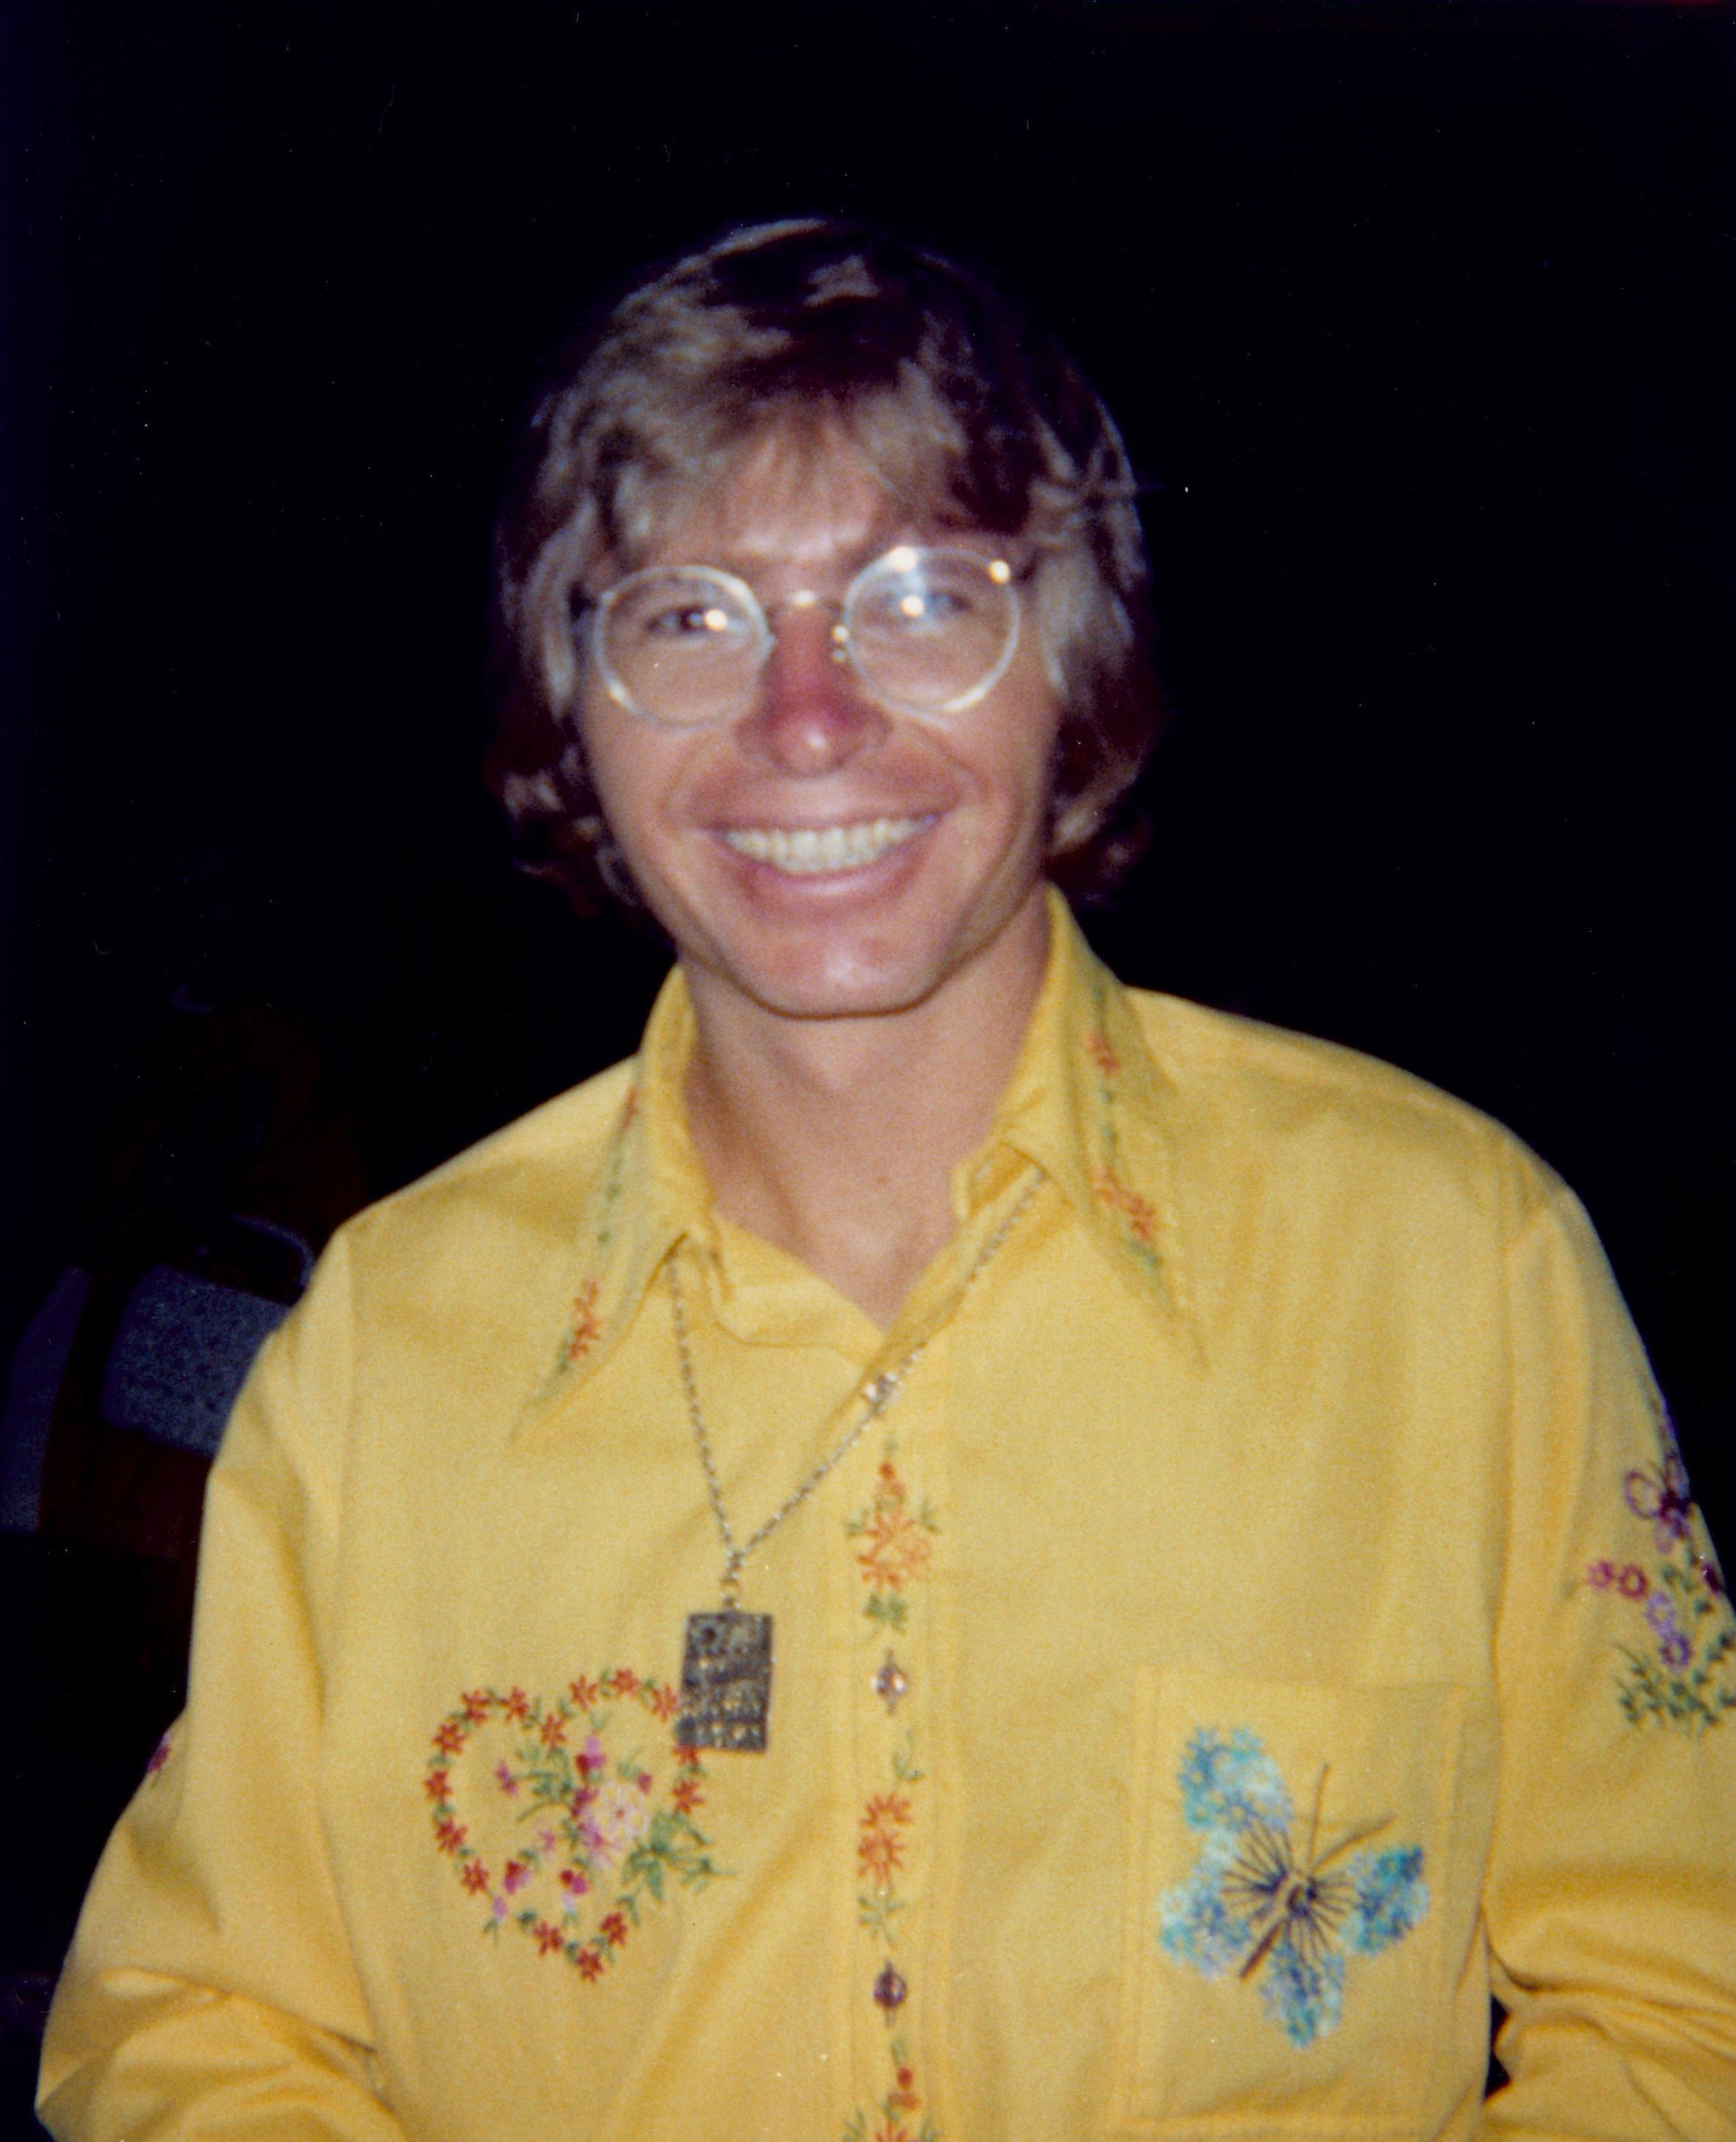 John Bair Wallpapers John Denver Wallpaper Images Crazy Gallery